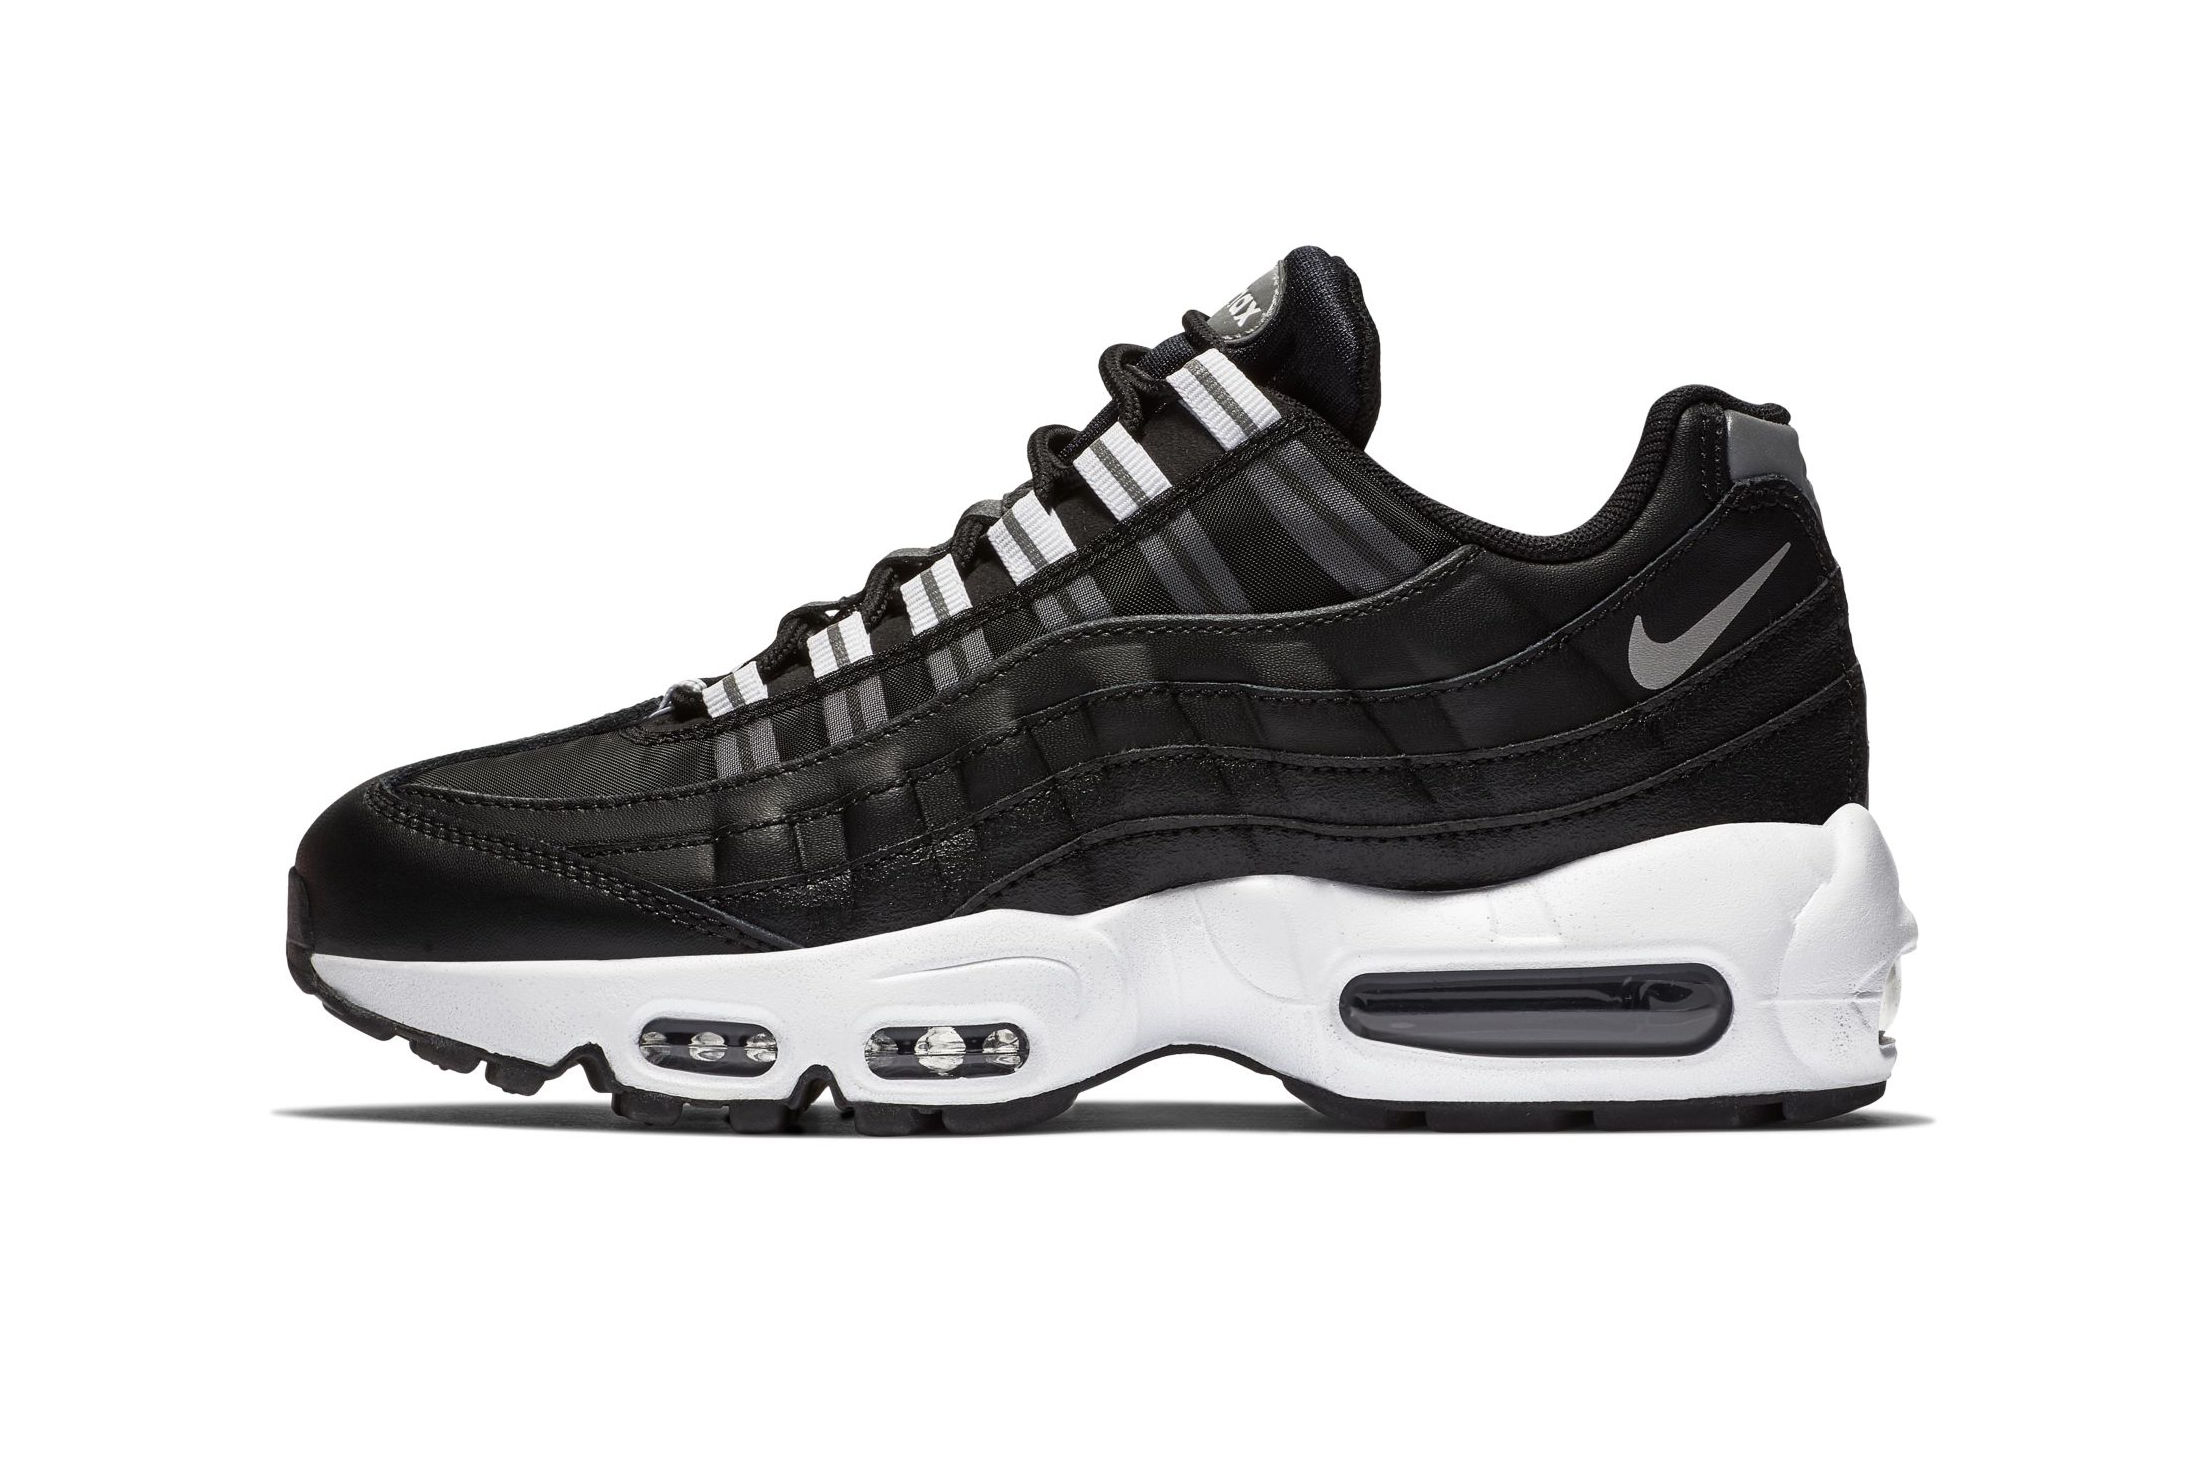 Nike Air Max 95 in Black, Reflect Silver & White | HYPEBEAST